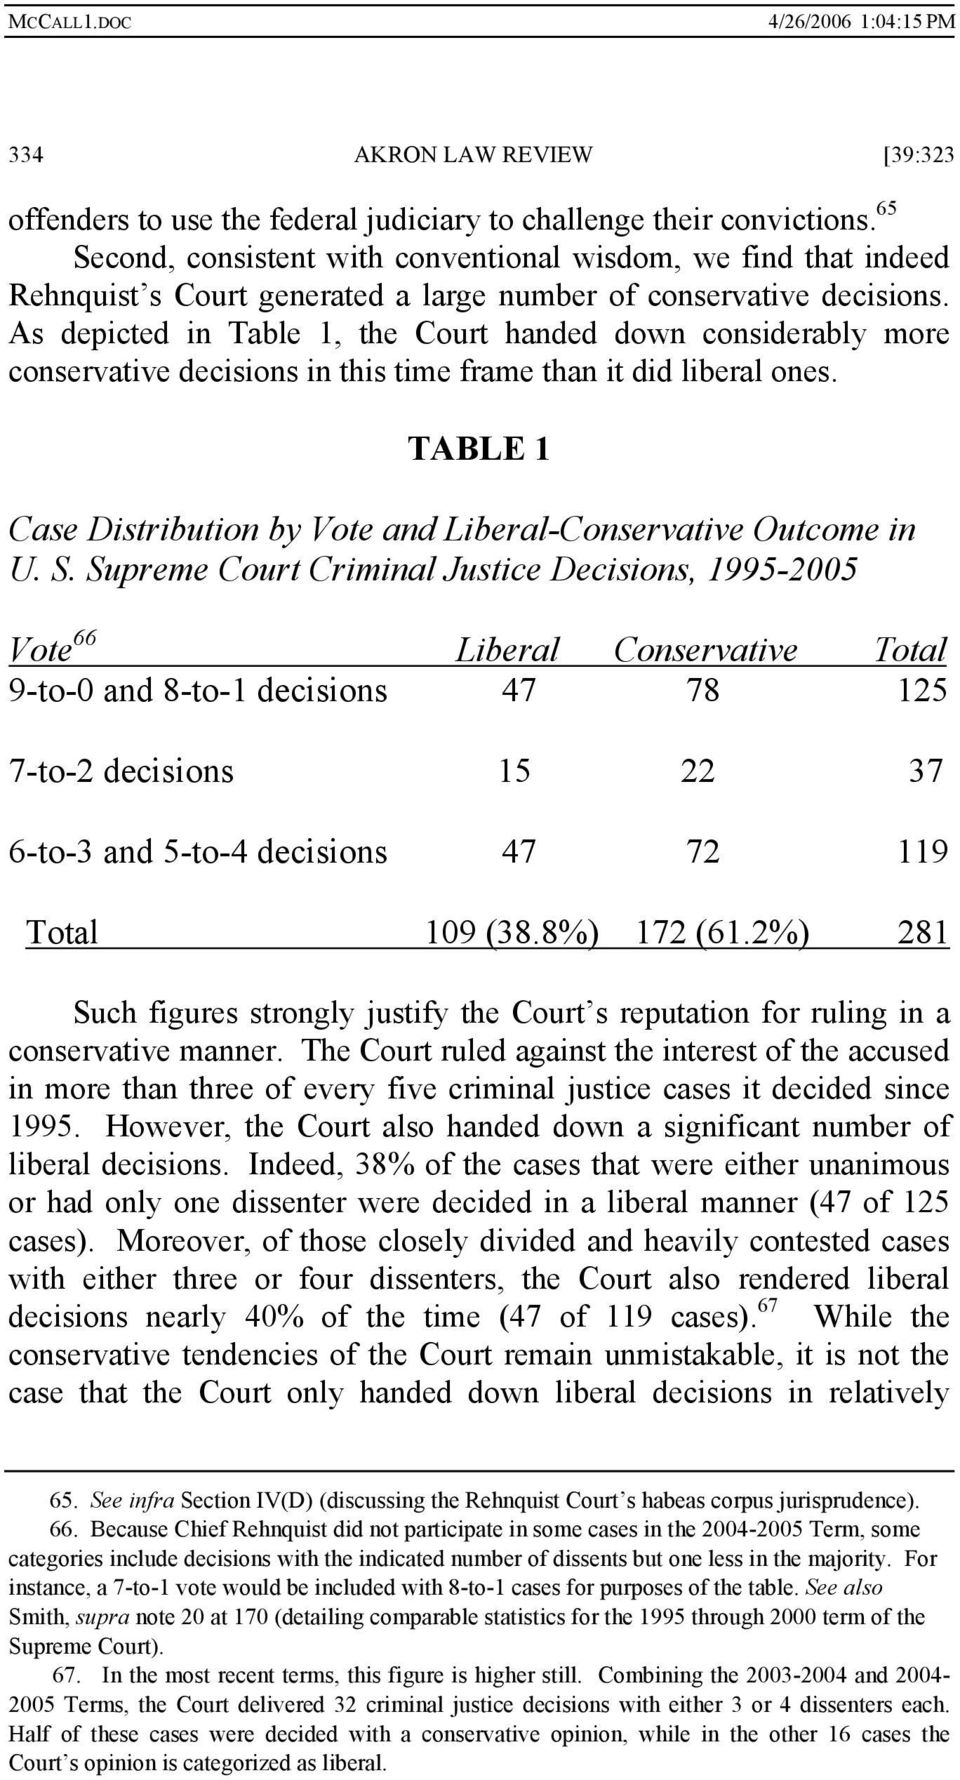 As depicted in Table 1, the Court handed down considerably more conservative decisions in this time frame than it did liberal ones.